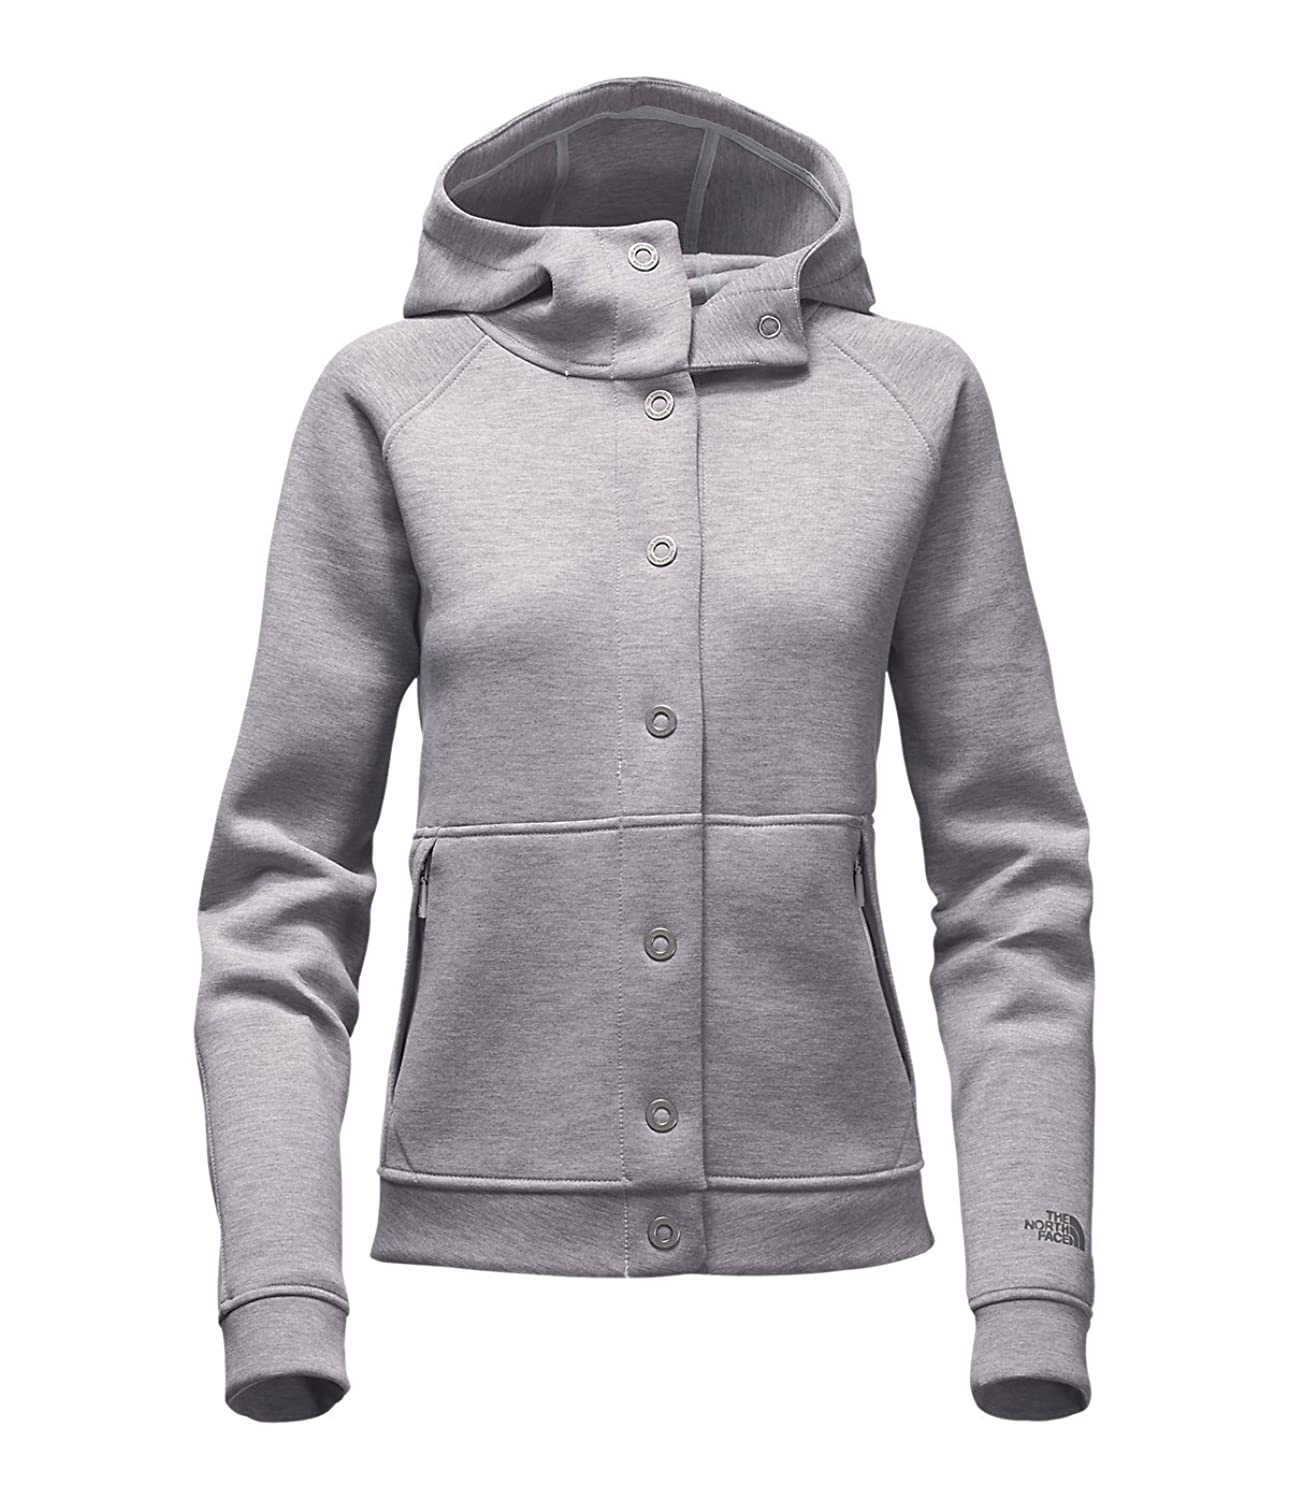 Authentic The North Face Hometown Hoodie B91e7 Bf389